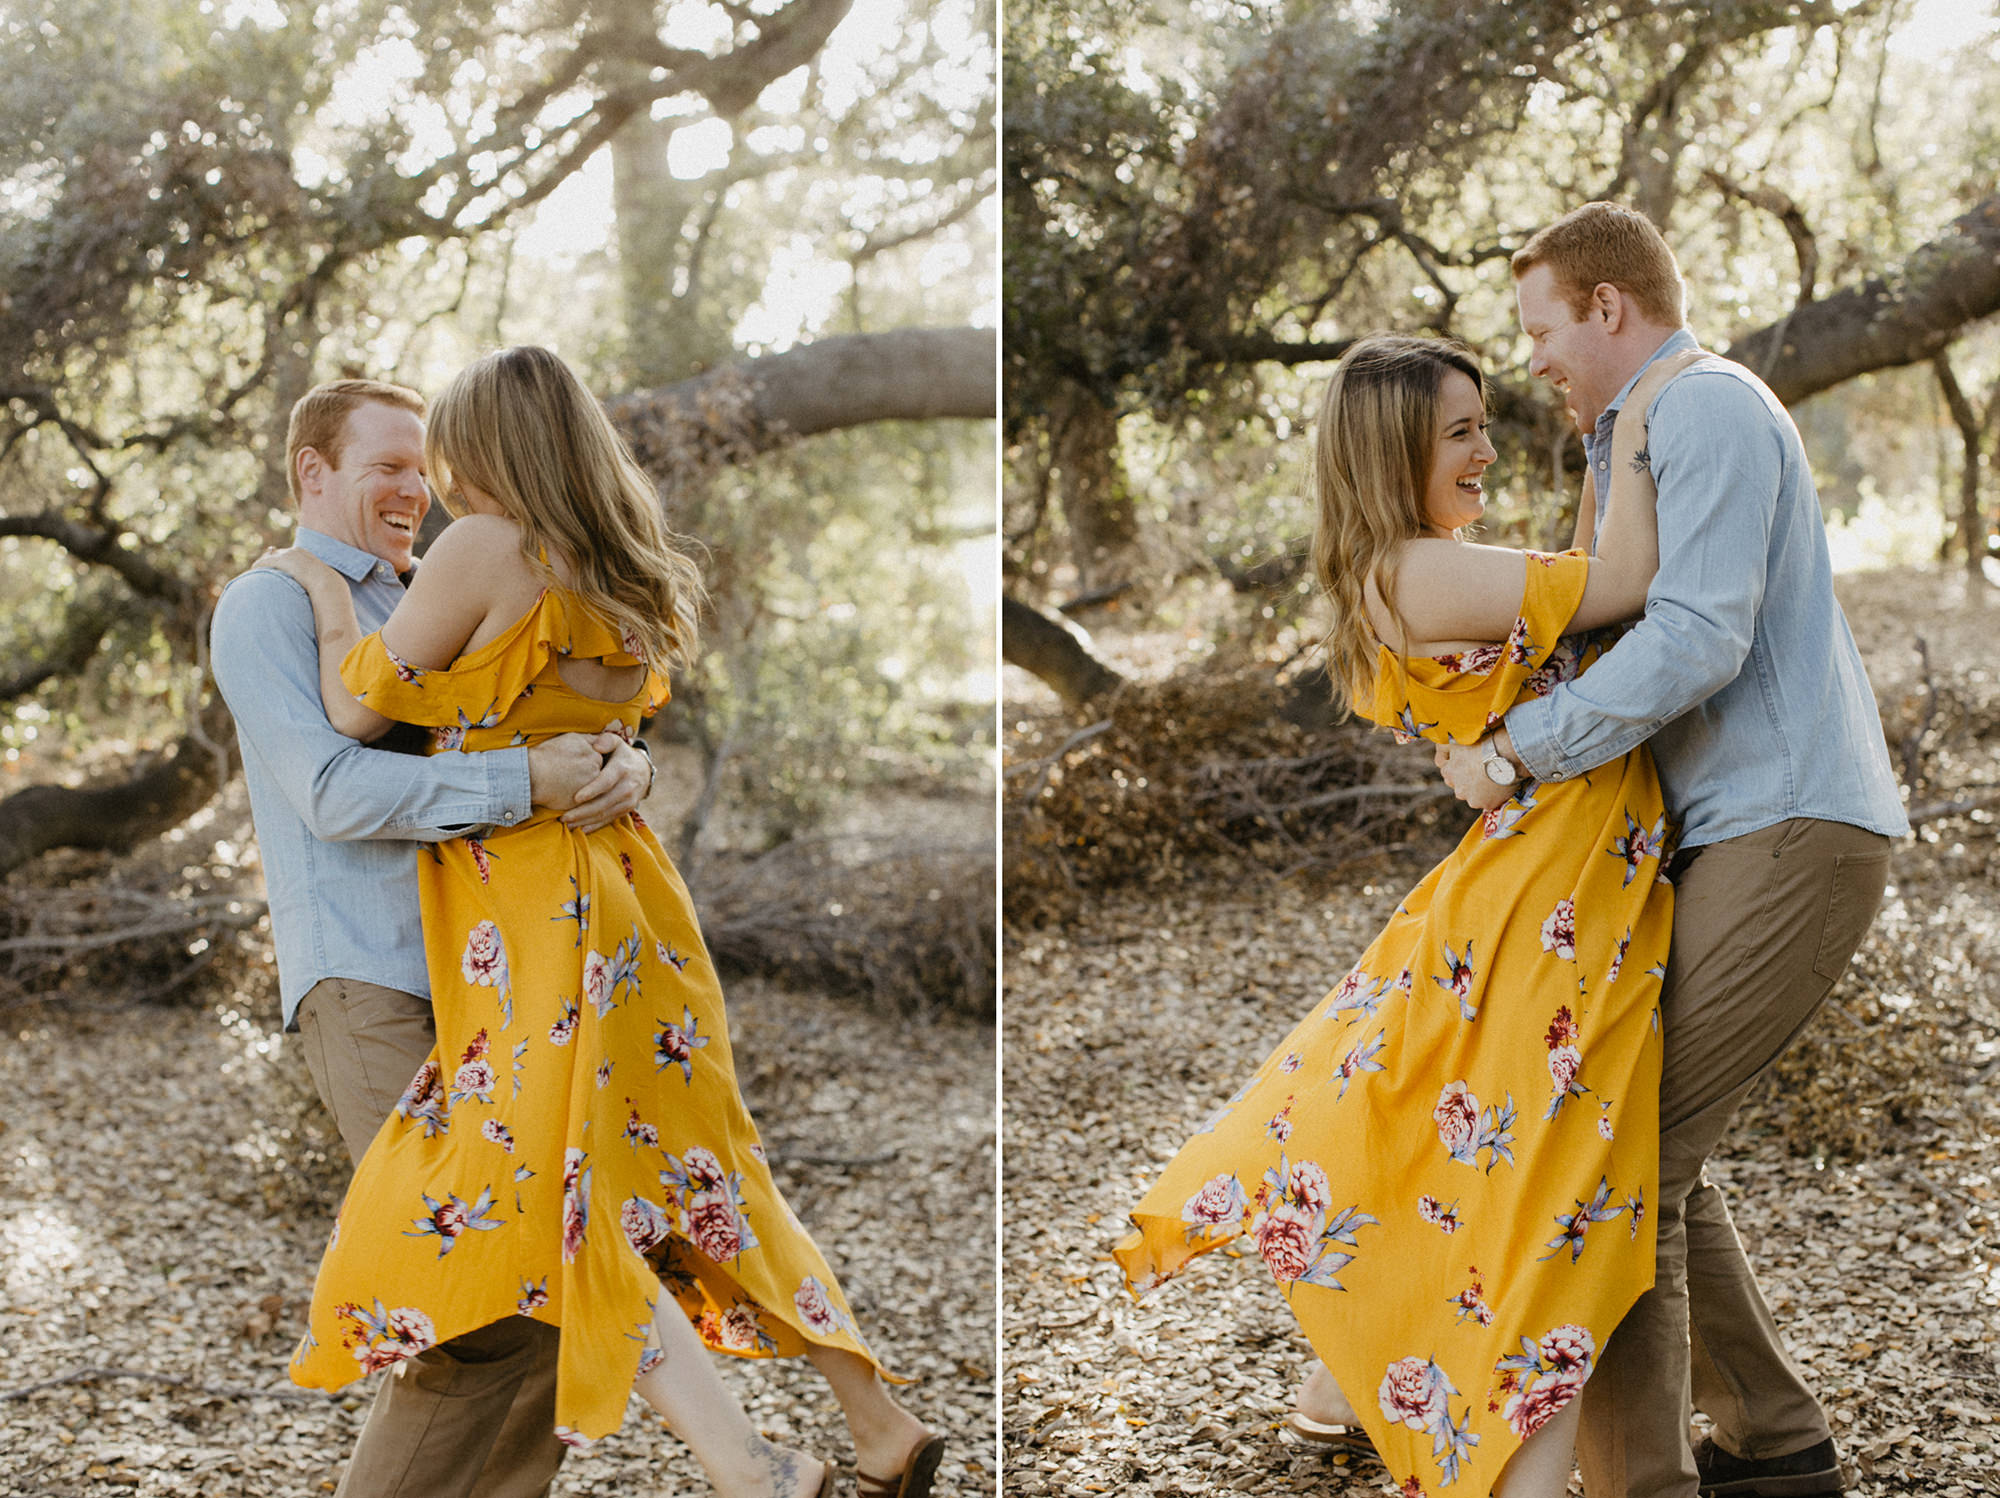 thomas f riley wilderness park engagement photos -14.jpg